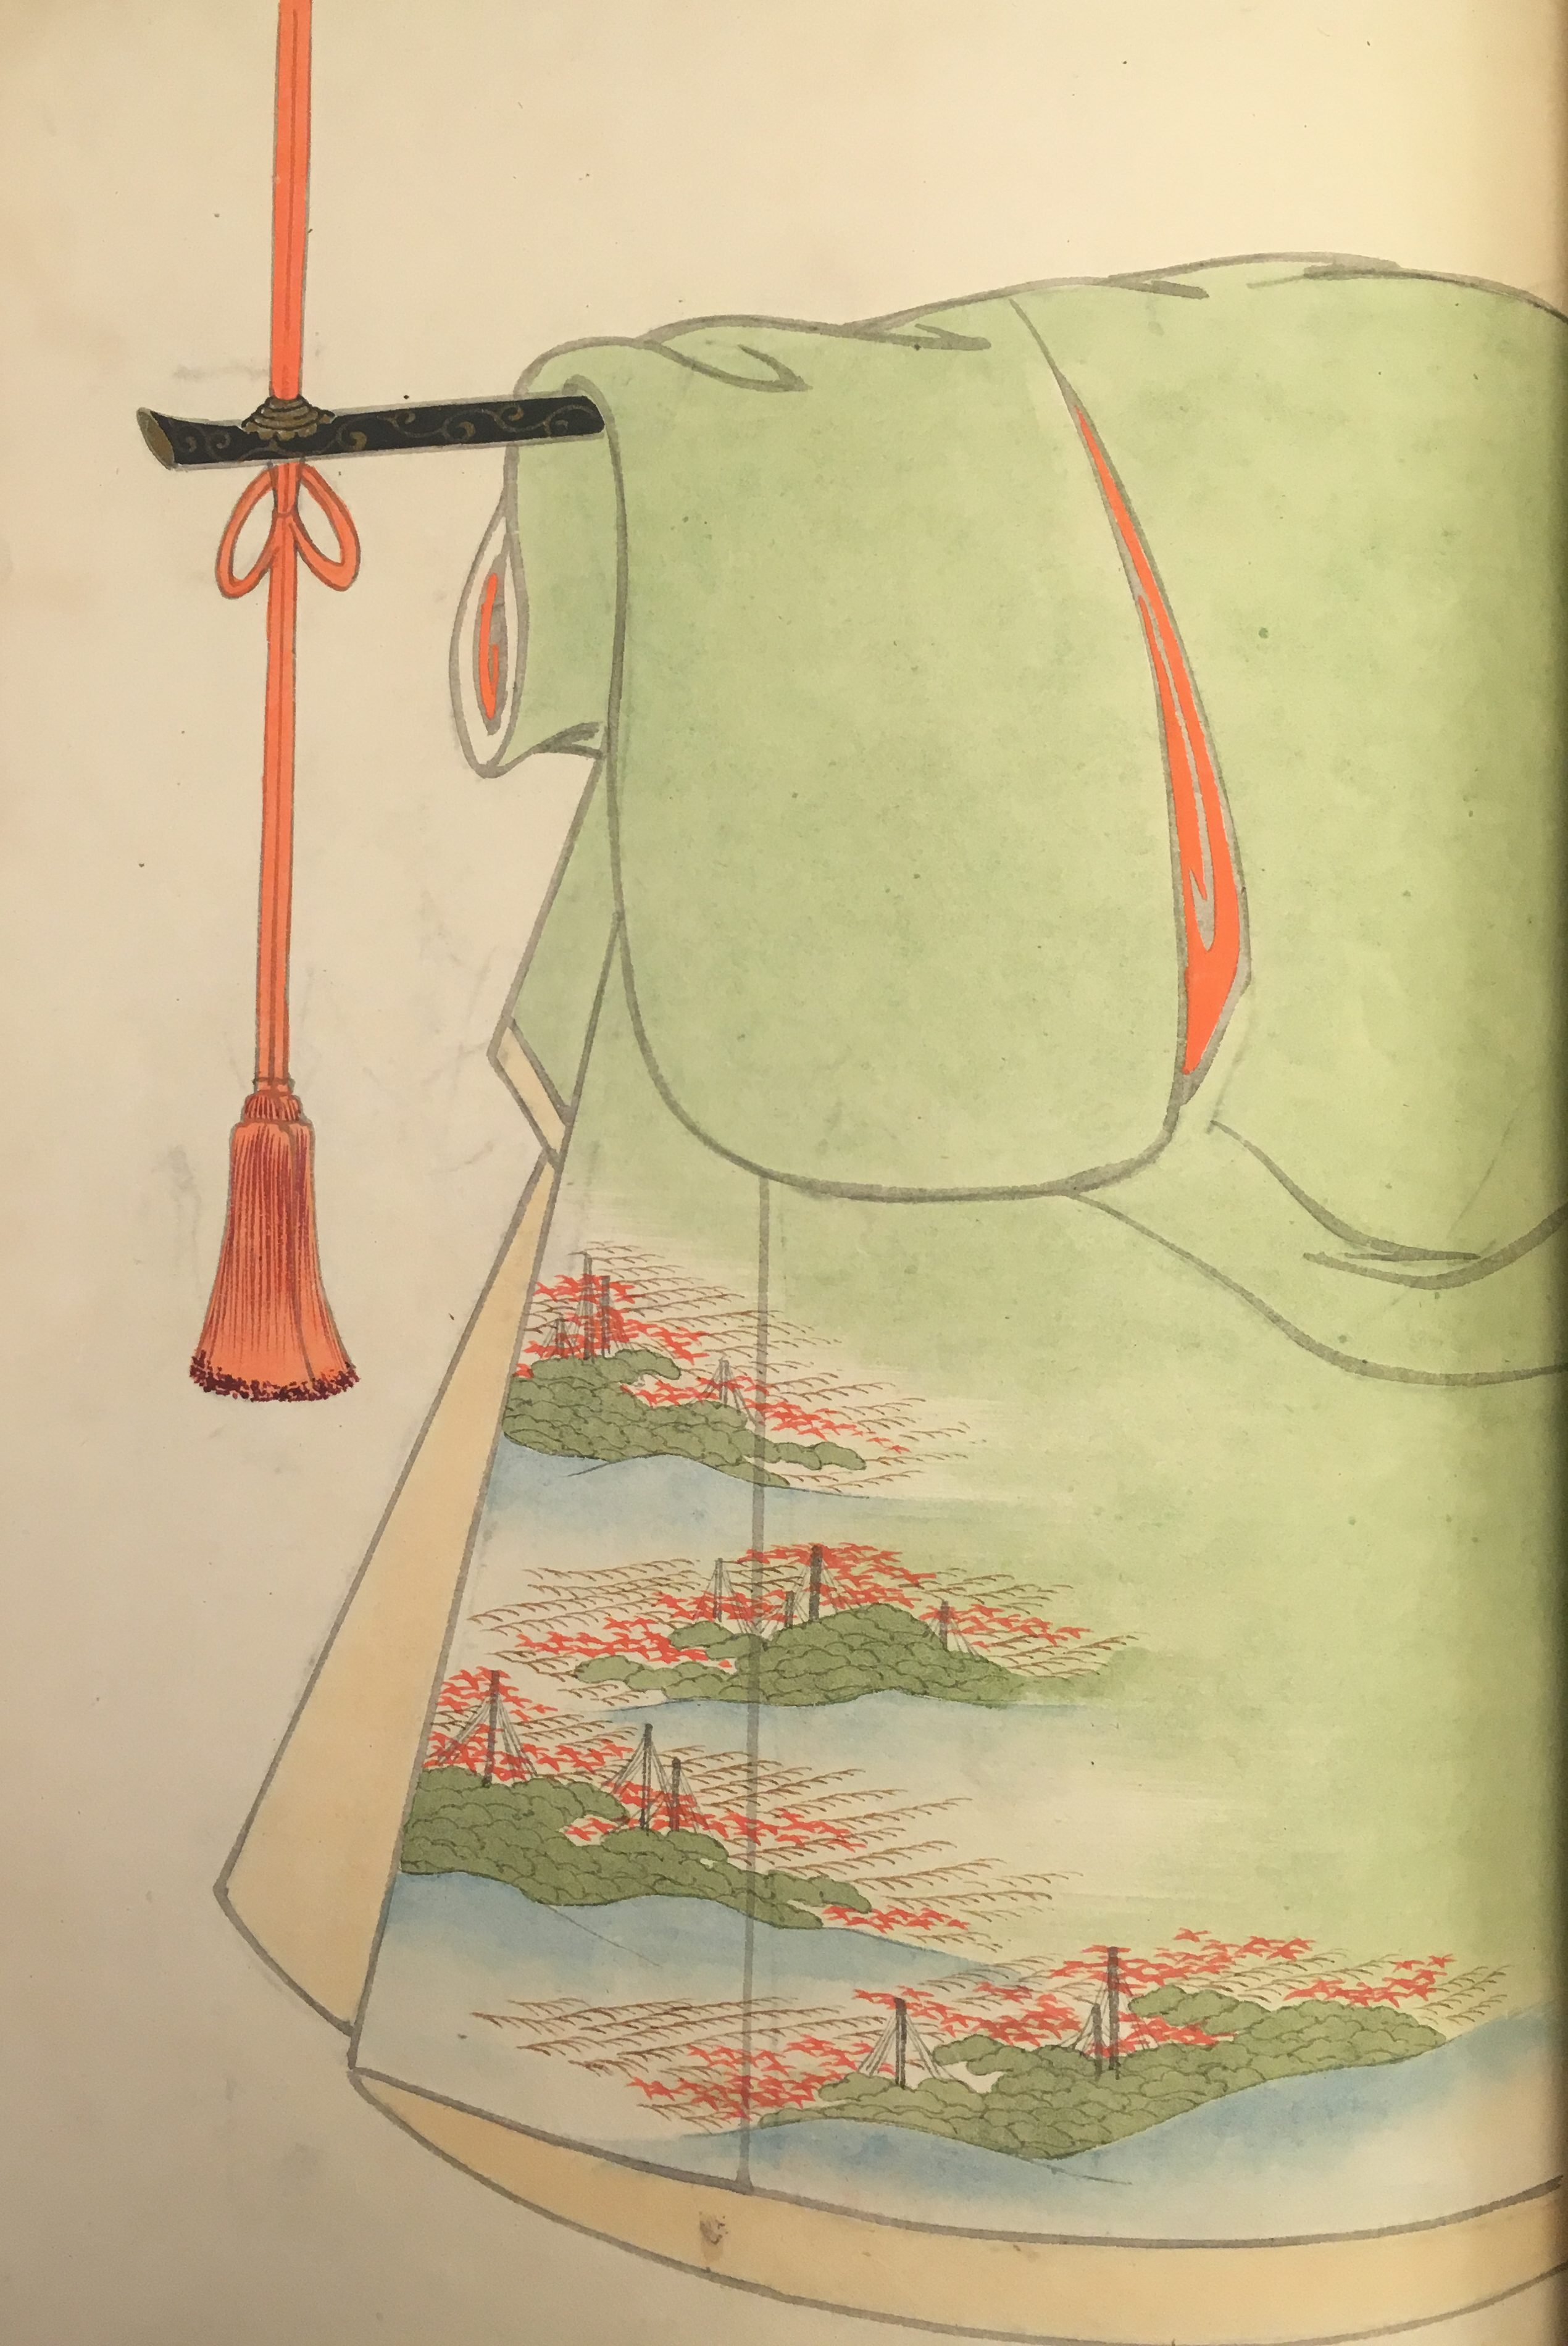 A light green kimono design with a tan interior. The pattern appears to depict a landscape of evergreen trees and flowers observed from on high.